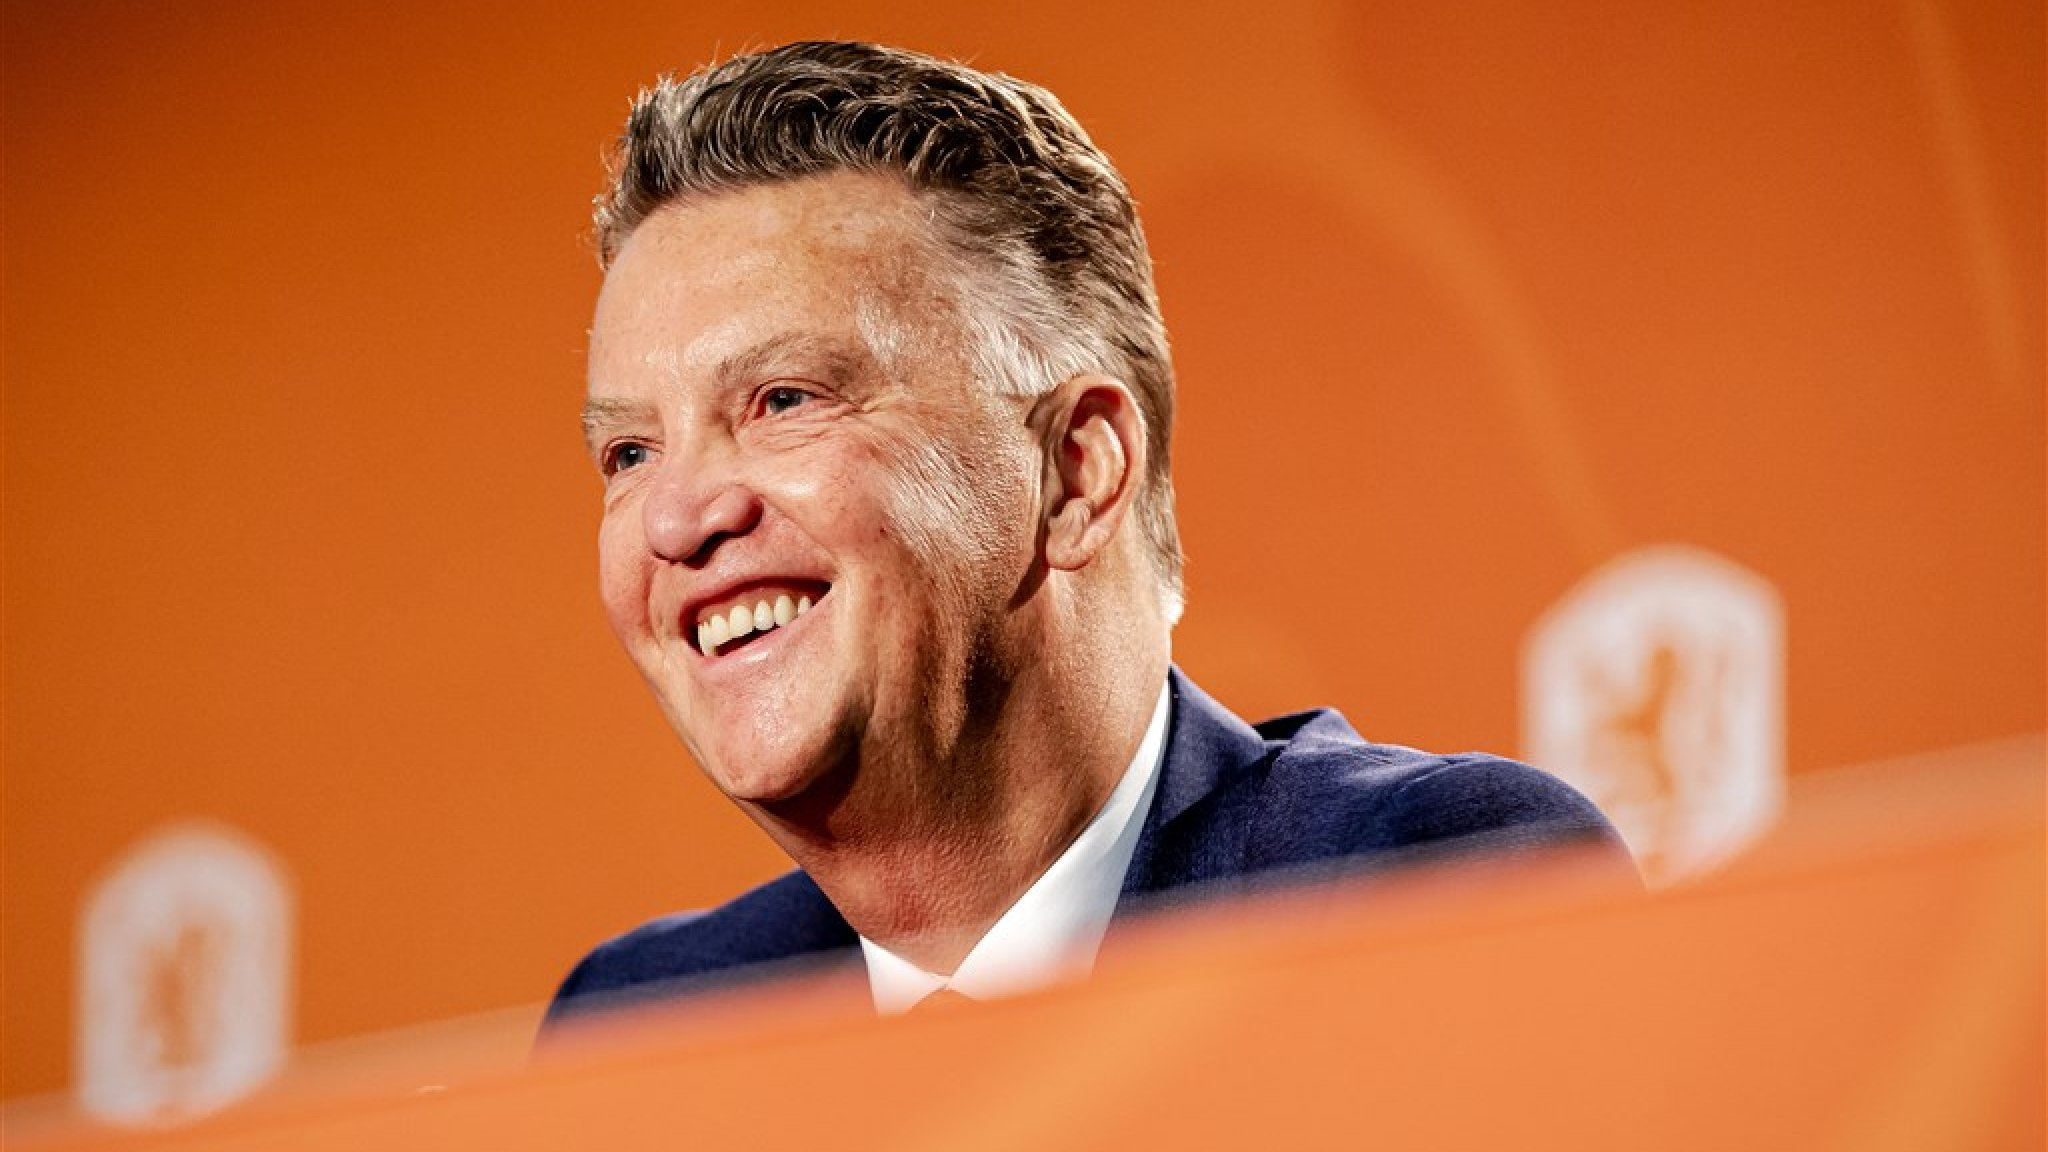 Louis van Gaal wants to give back to Dutch football: 'Don't do it to myself'